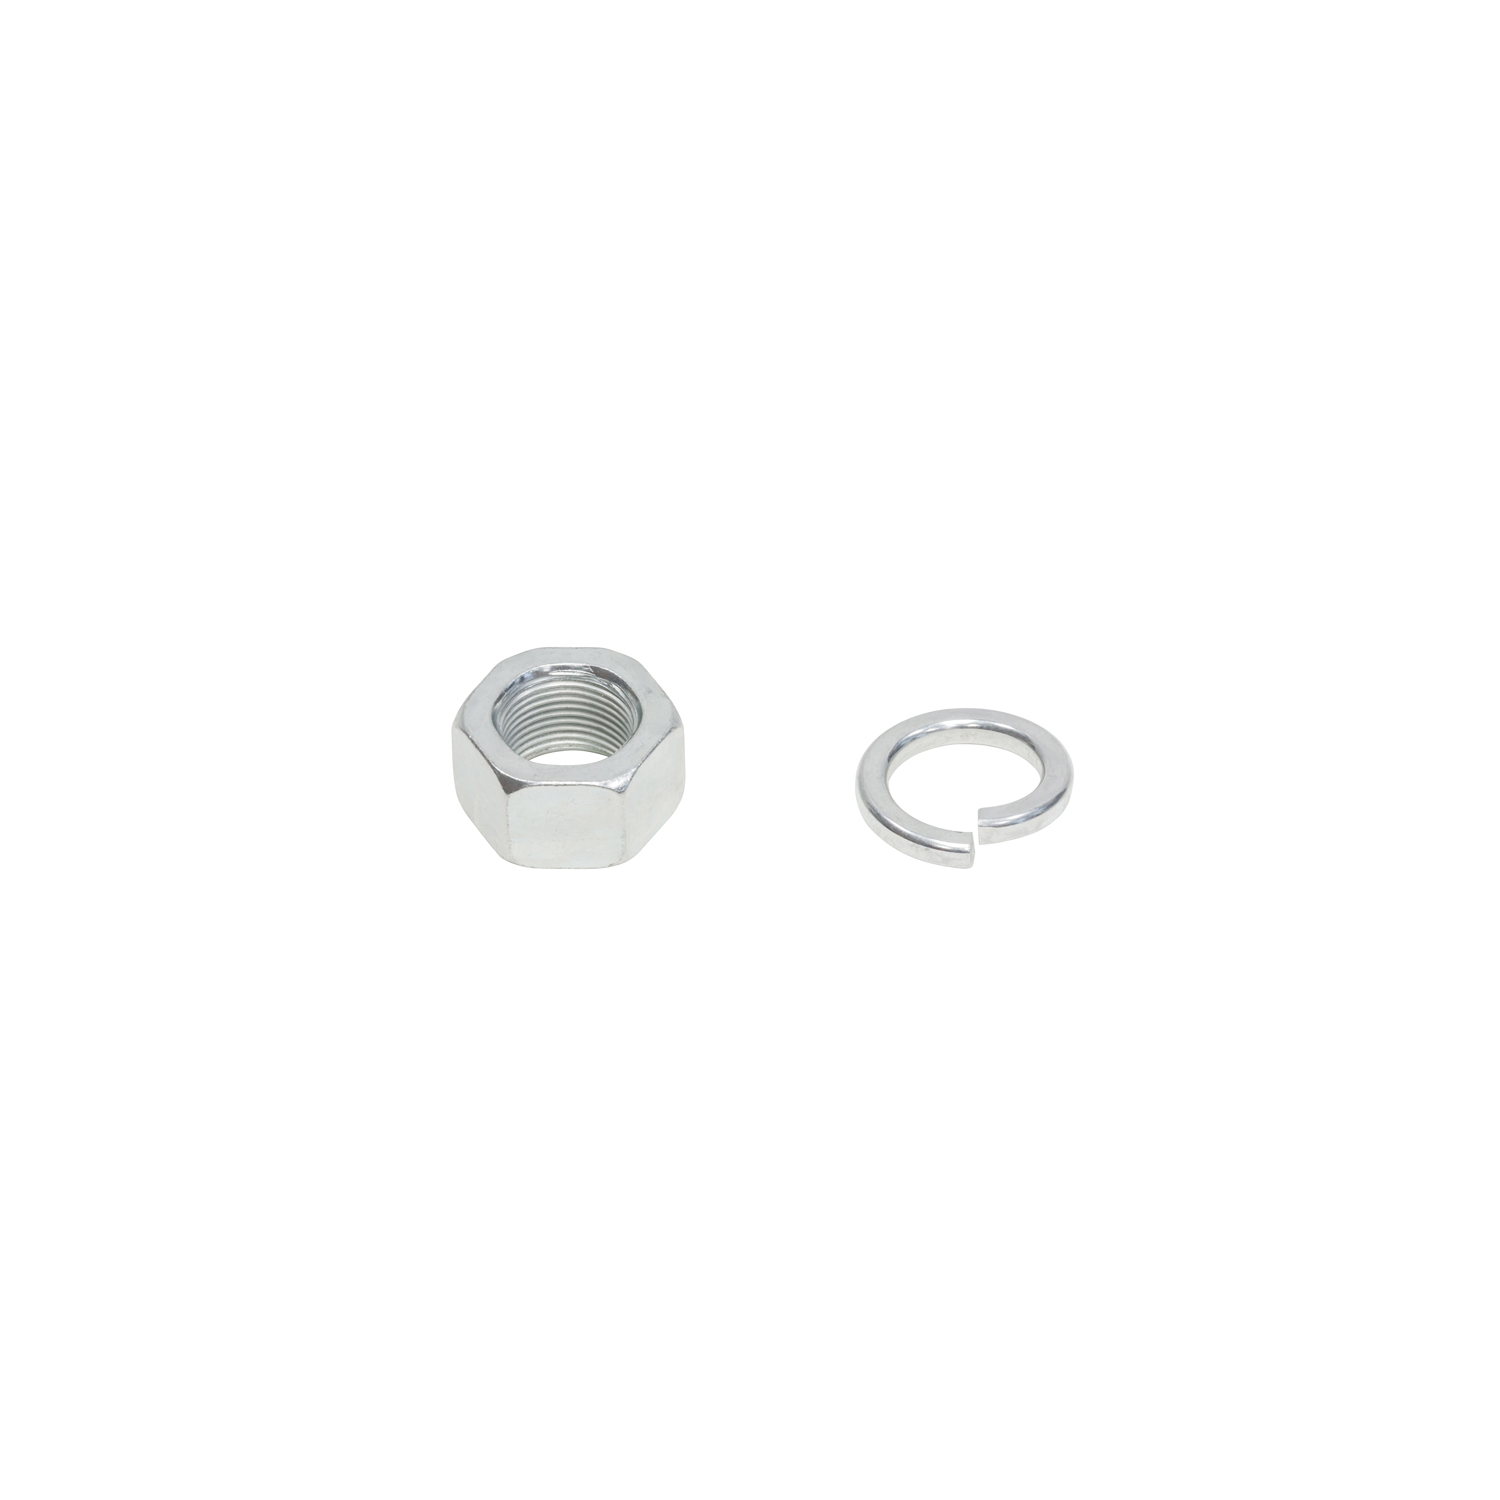 65-91010 Westin Automotive Nut Replacement 1 Inch Nut And Lock Washer